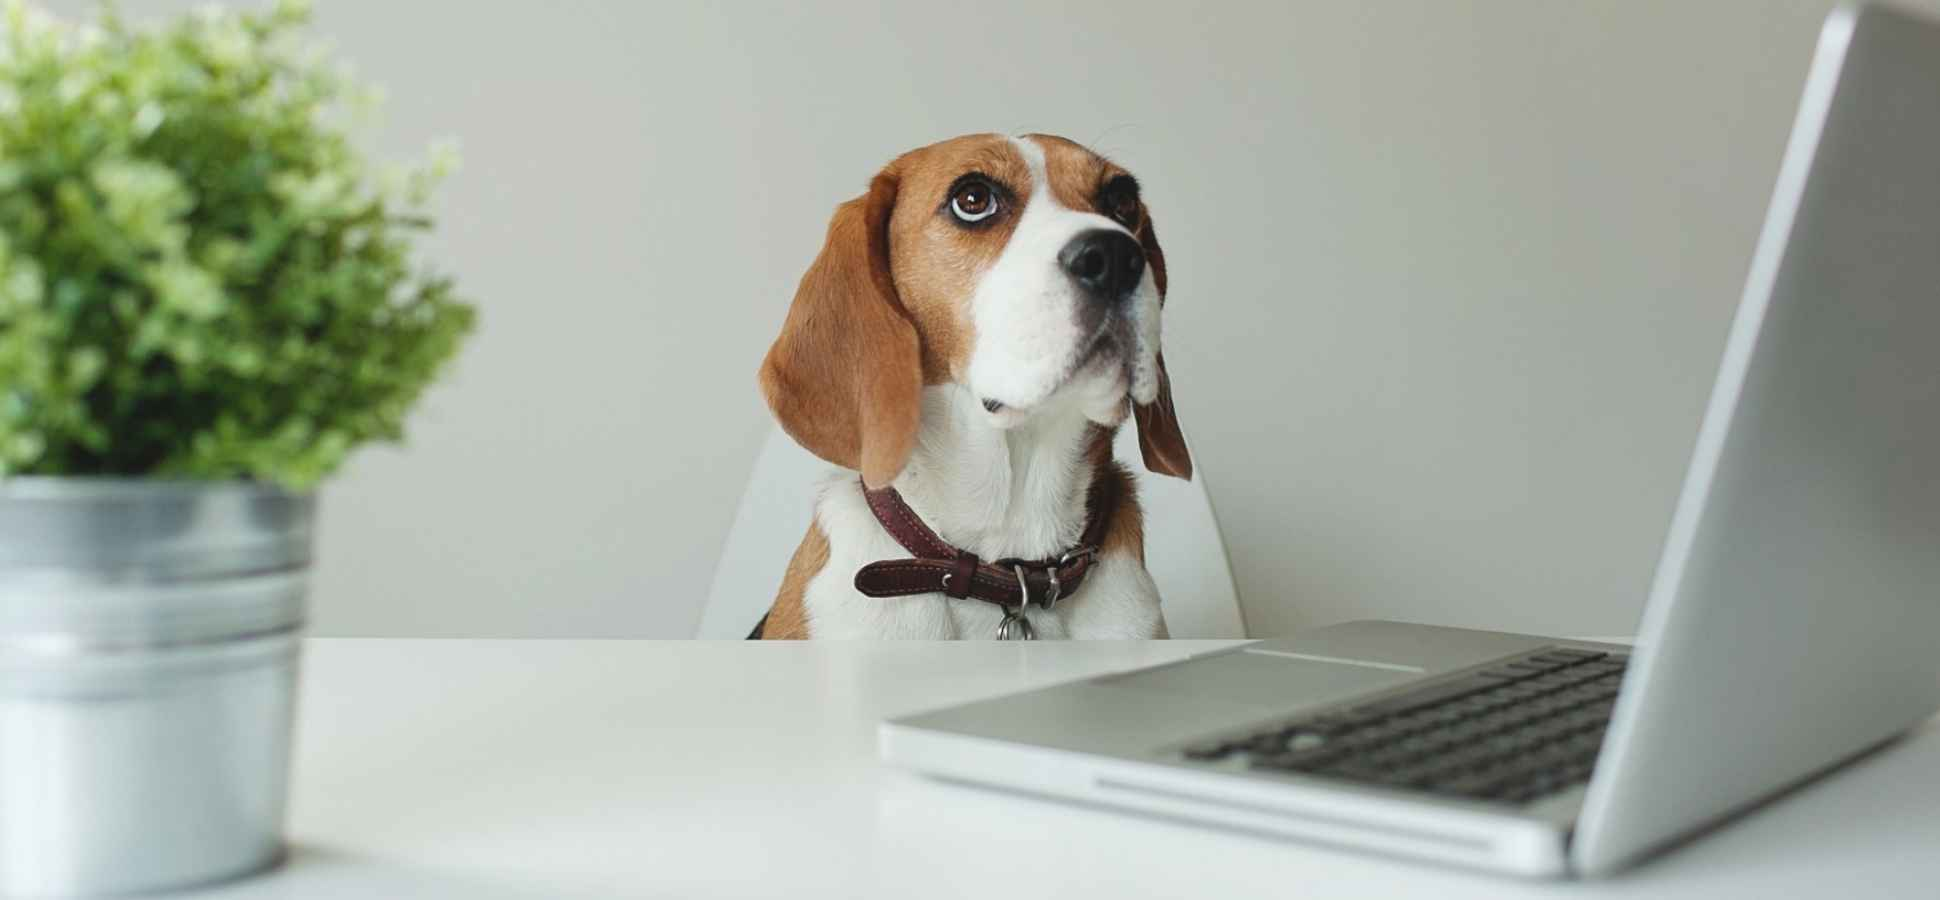 Canine Coworkers: Why More Companies Say Pet-Friendly Policies Are Good Business